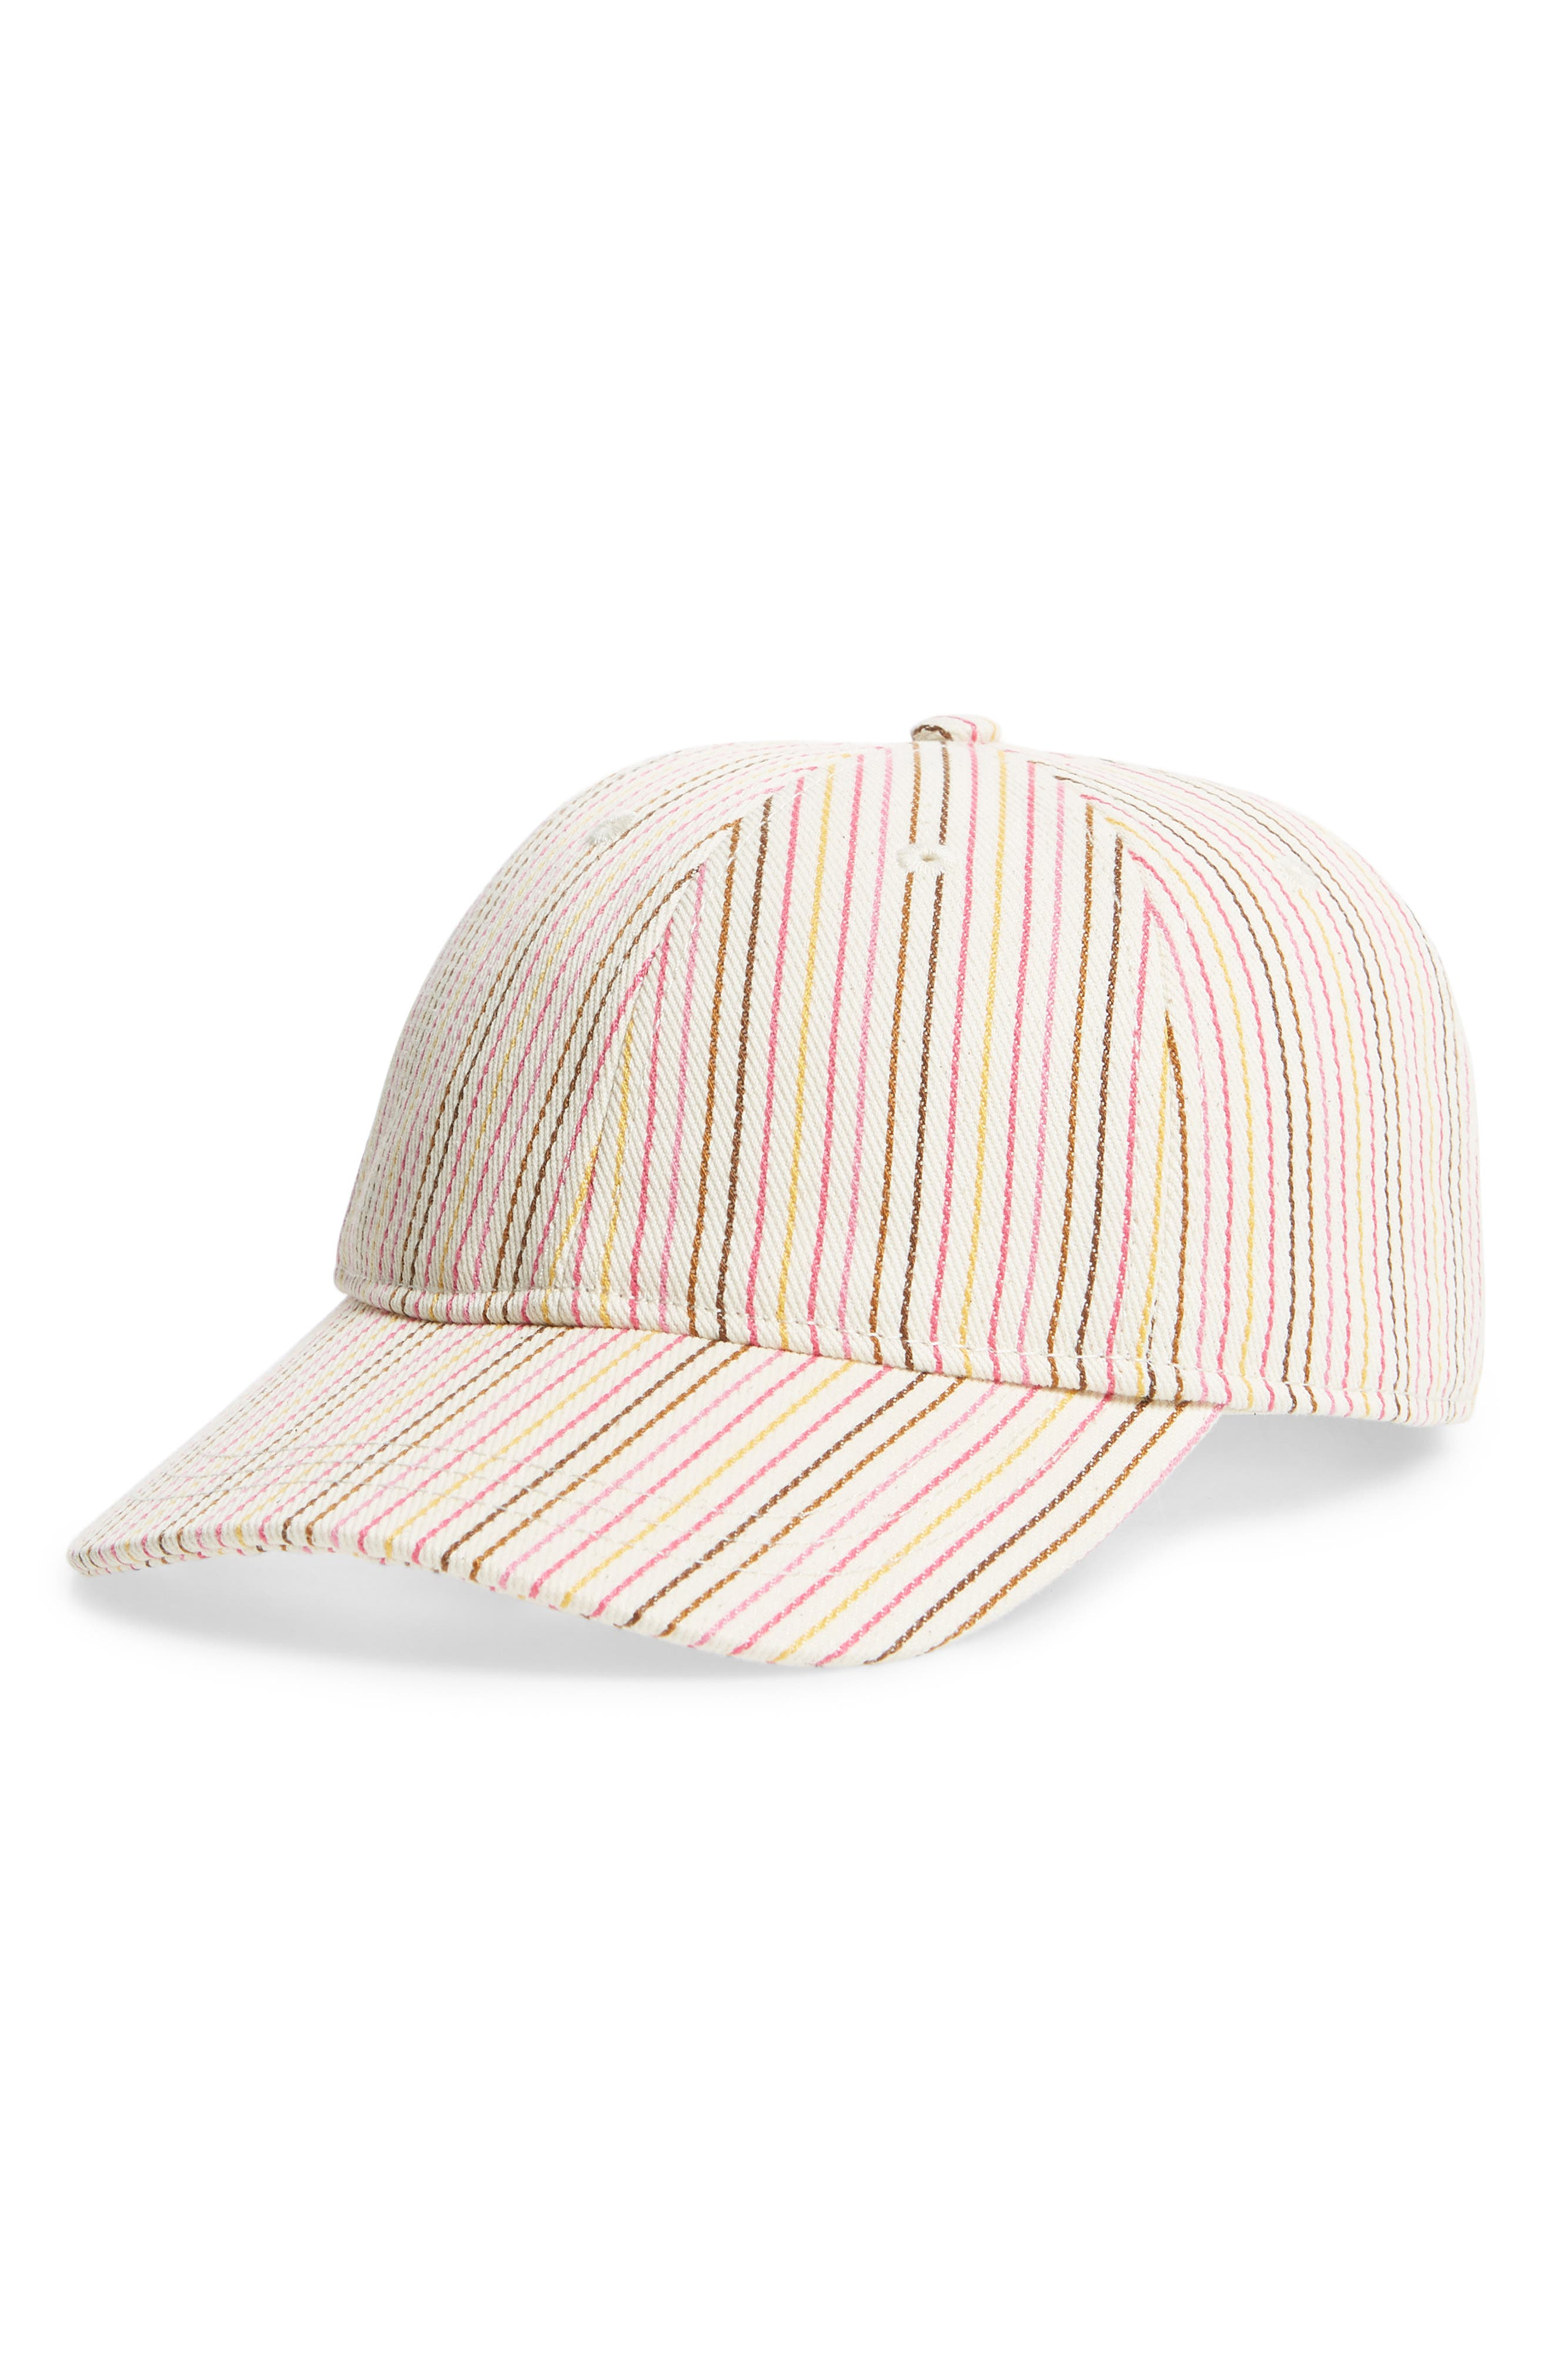 Multi Stripe Baseball Cap,                         Main,                         color, Pink Multi Stripe